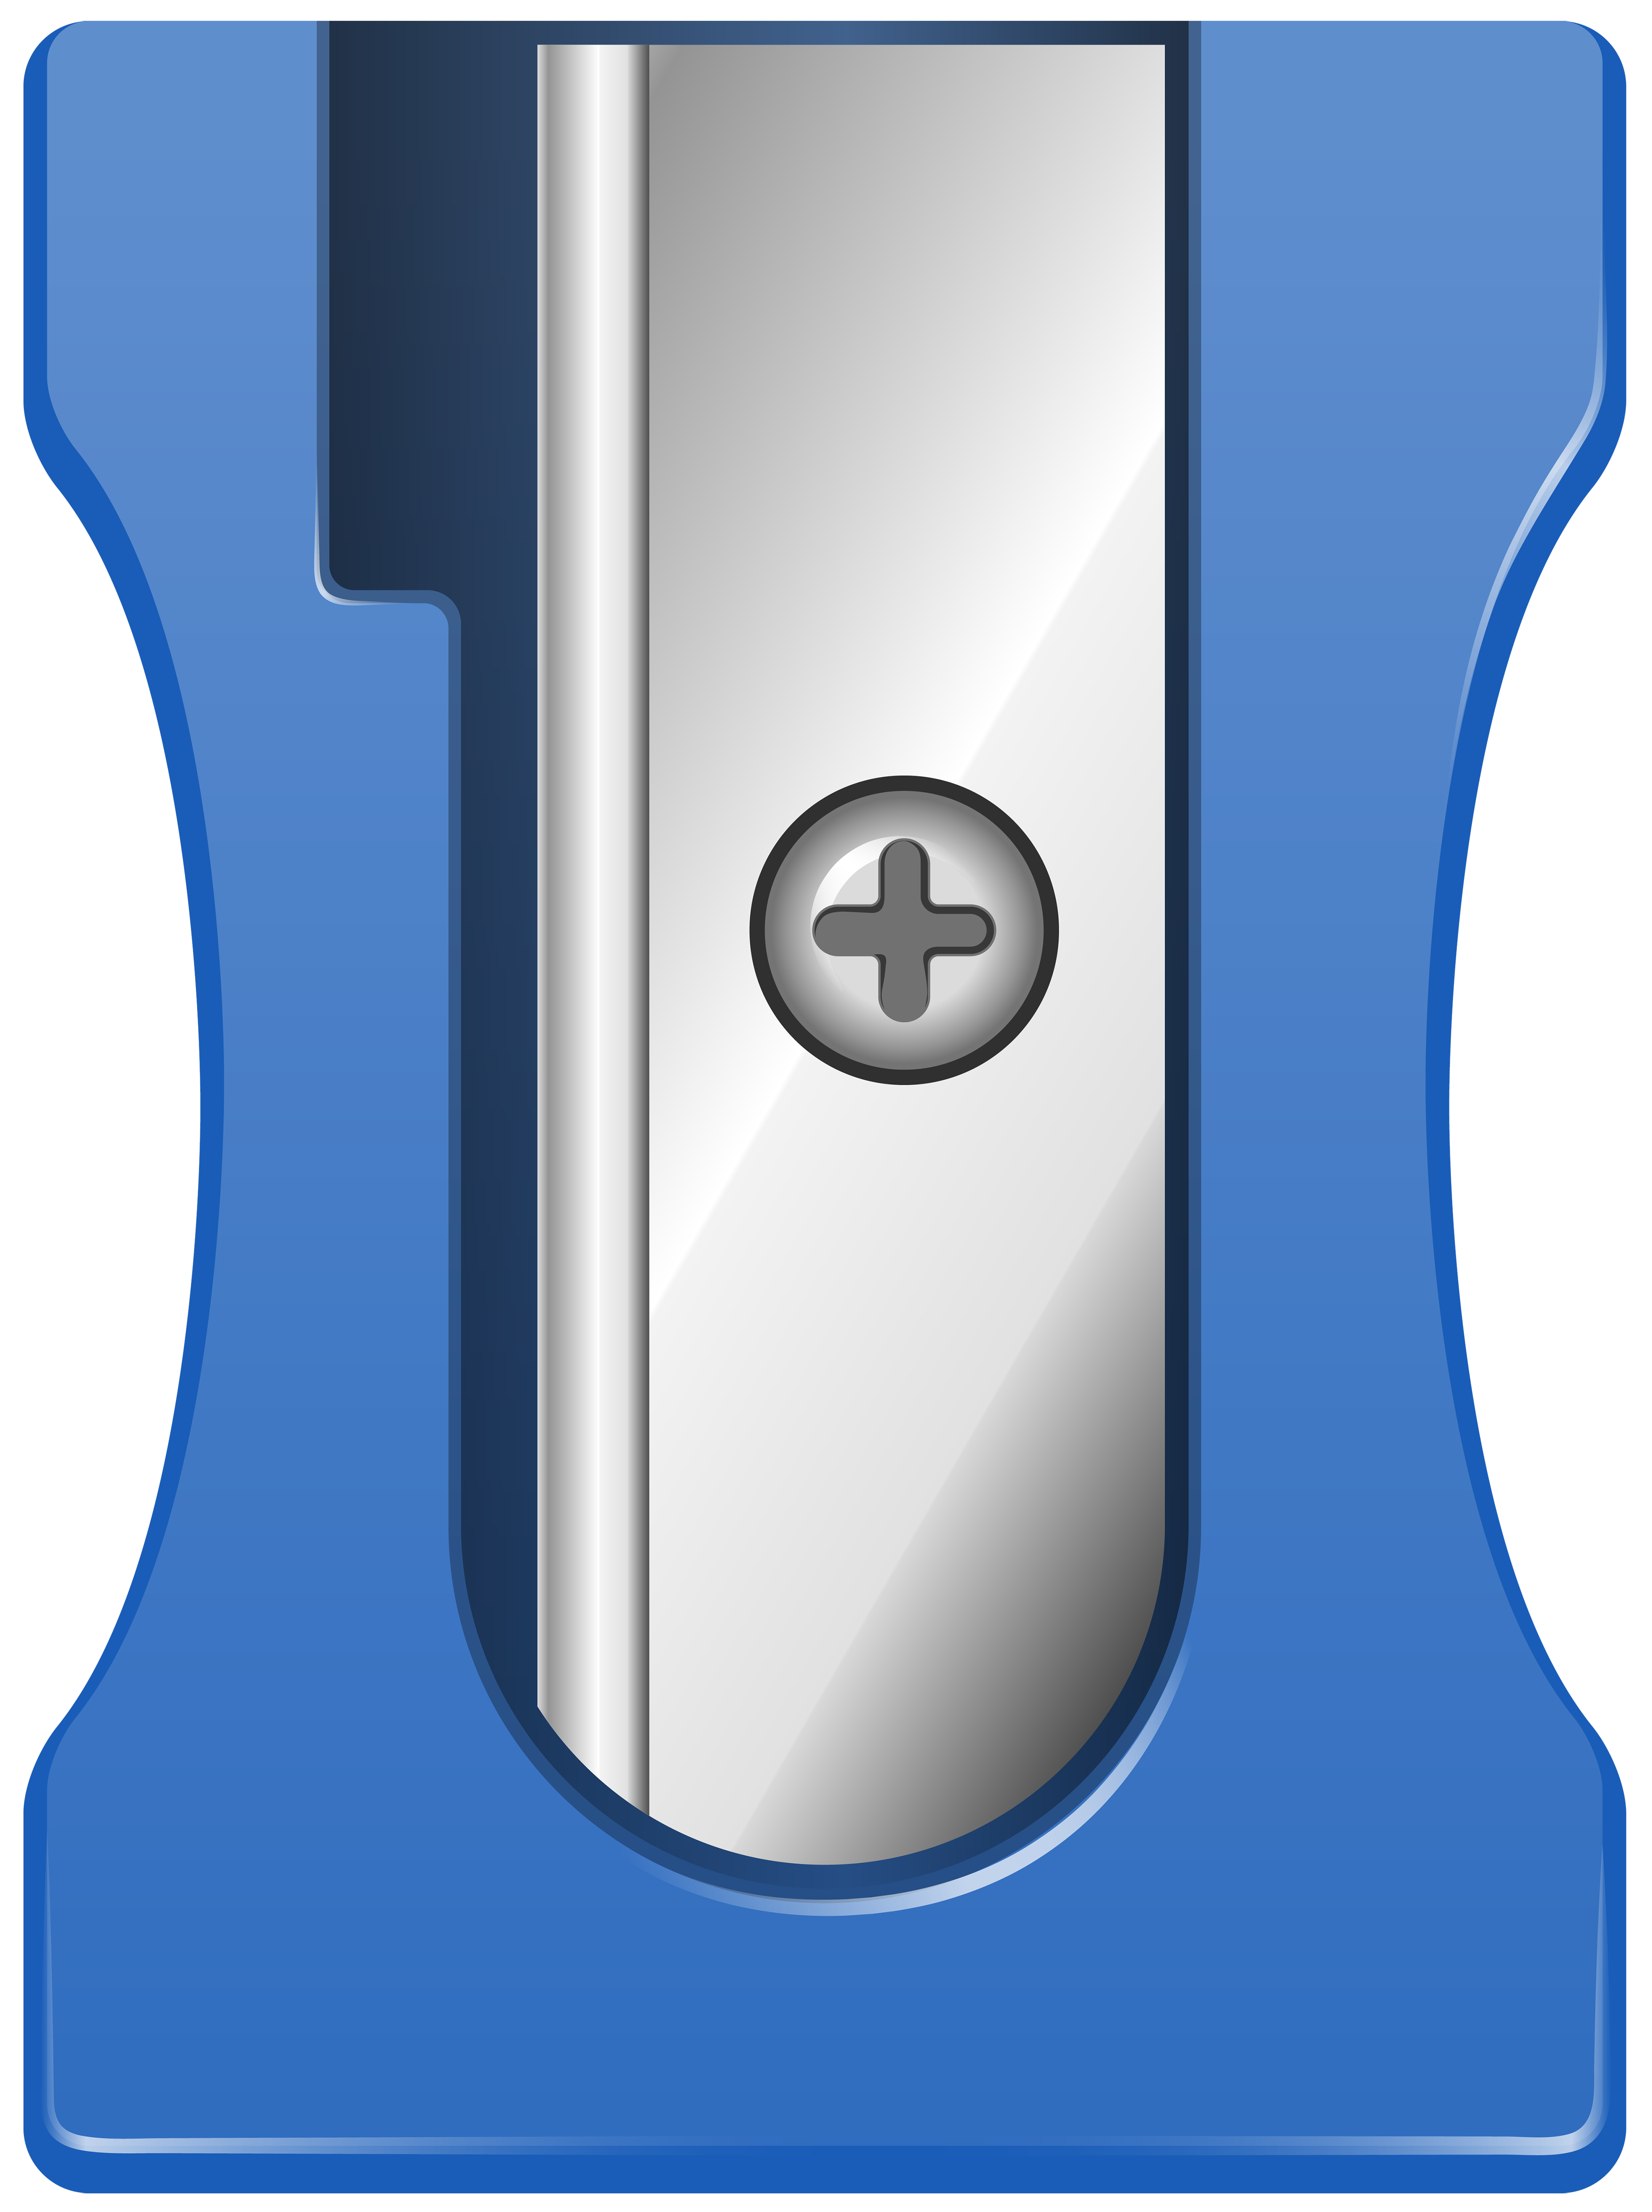 Electric clipart computer. Blue pencil sharpener png